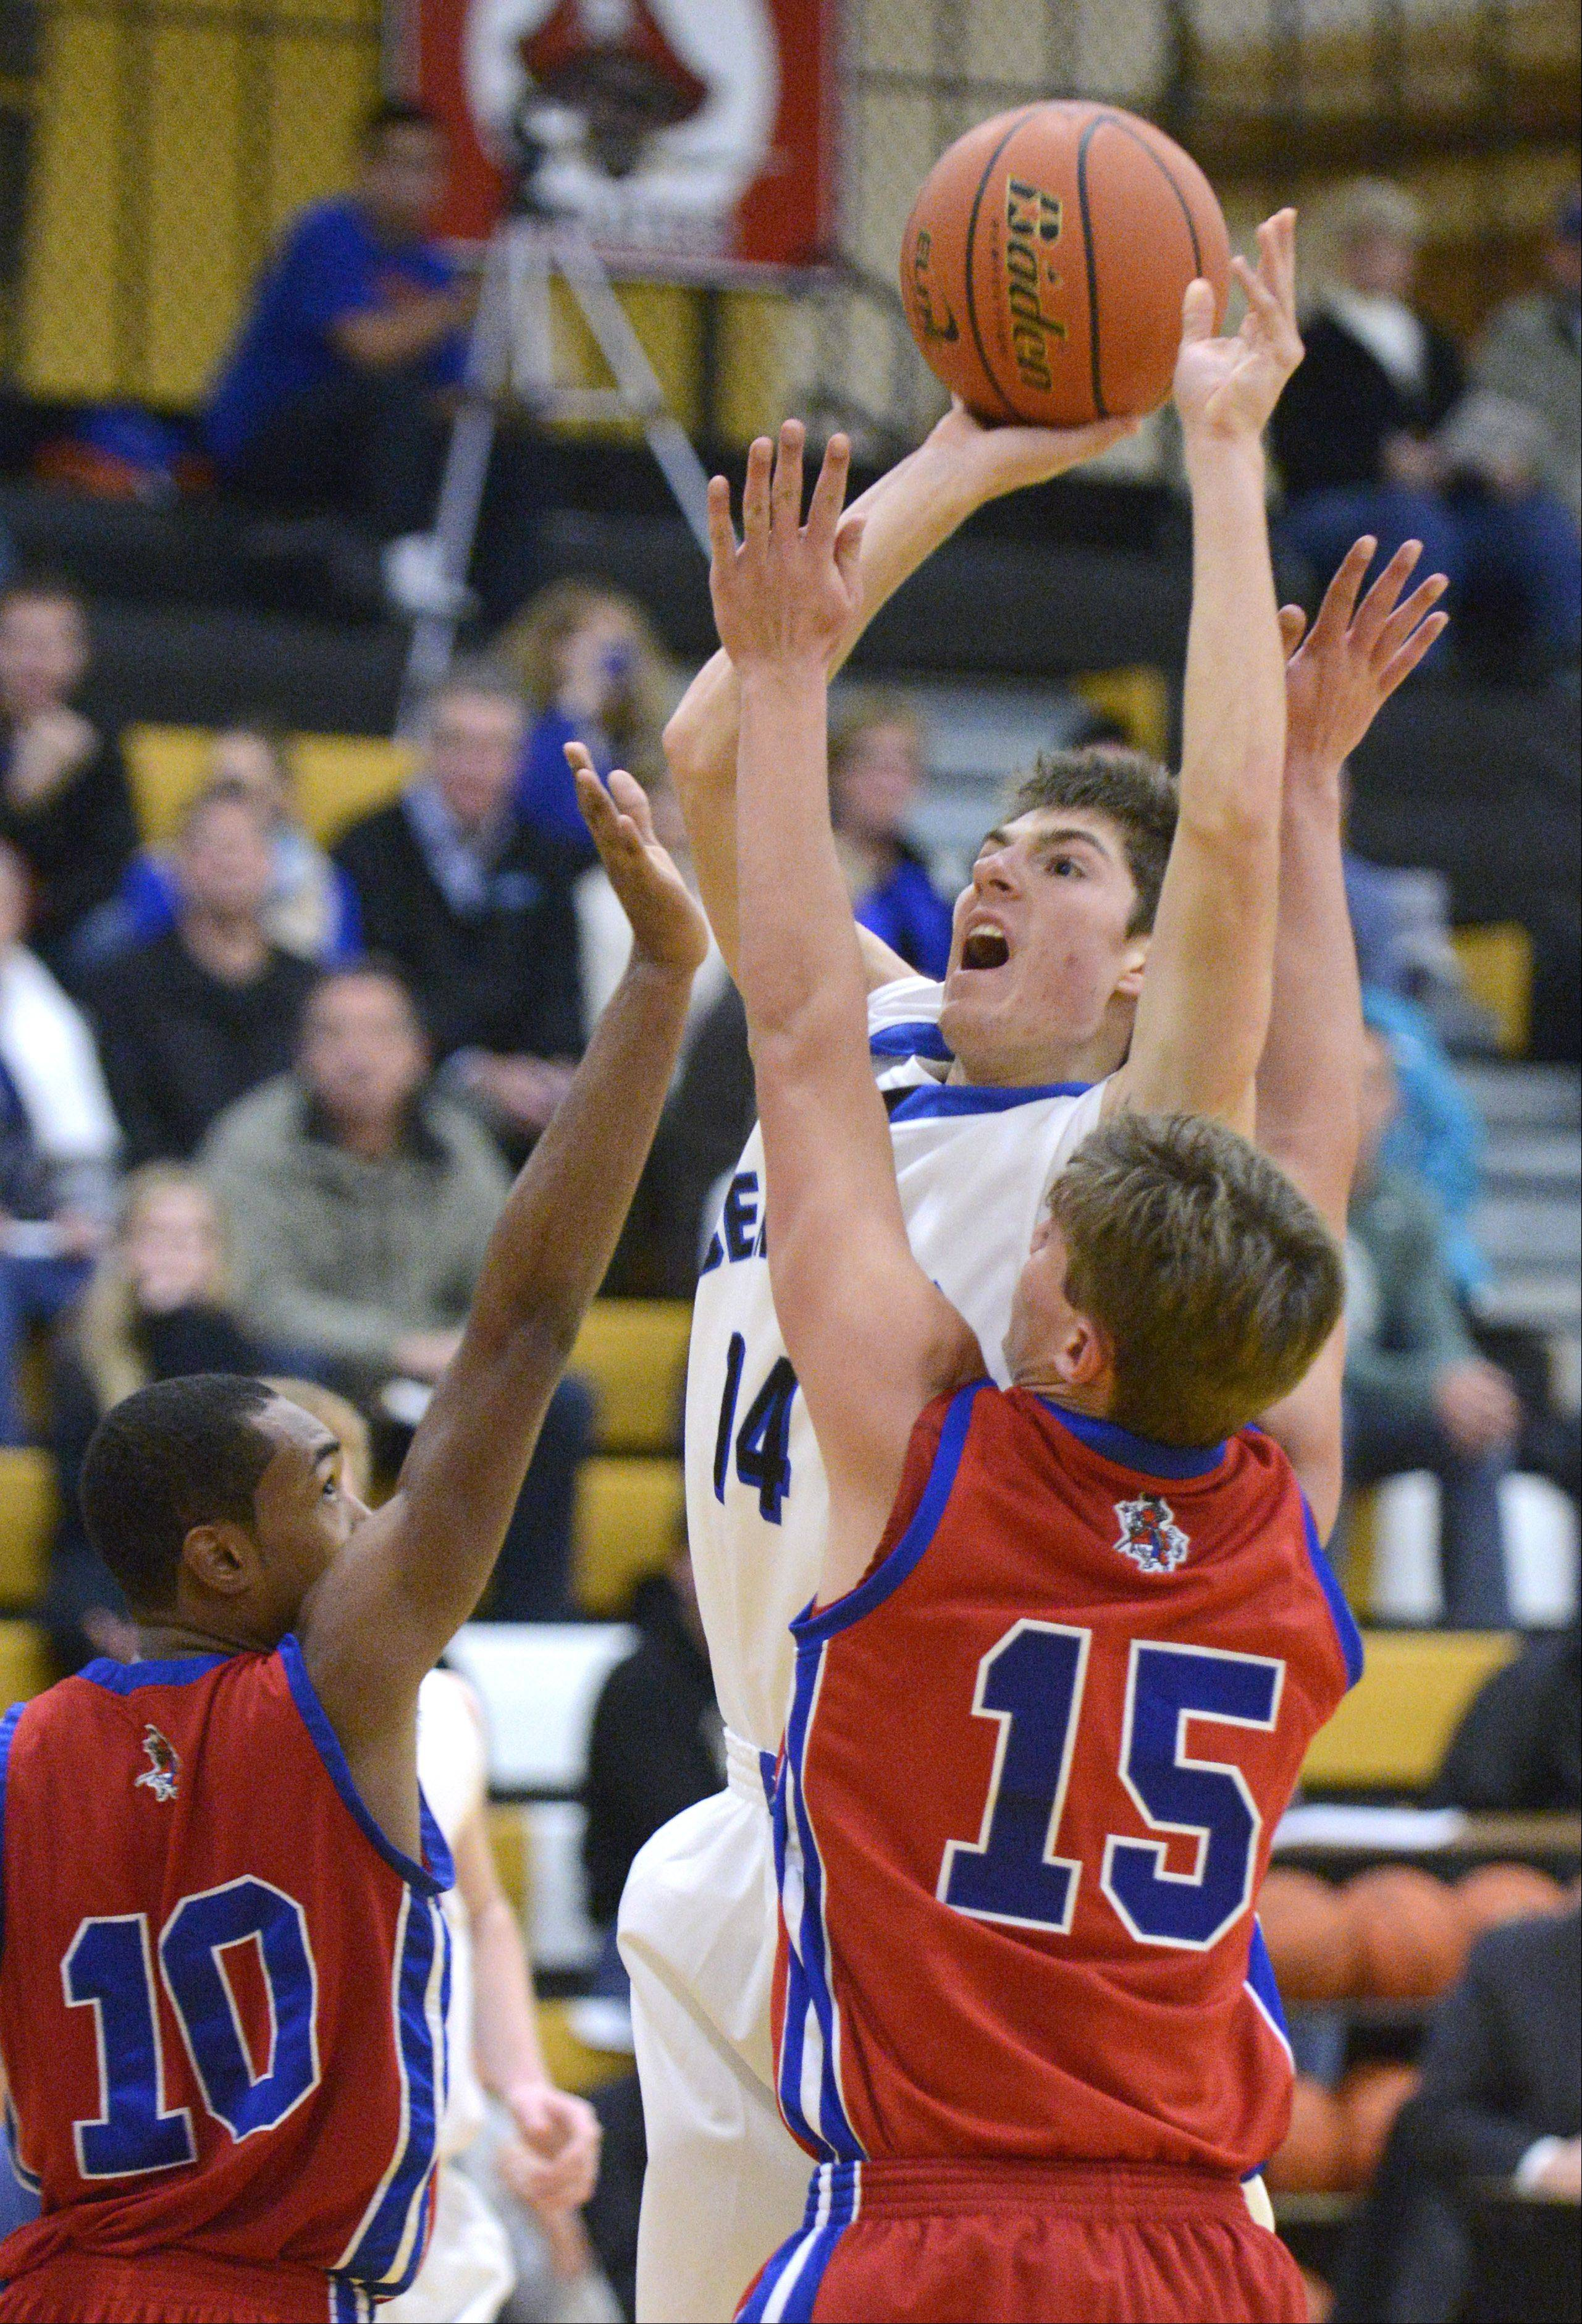 Burlington Central's Jacob Schutta sinks a shot over a block by Dundee-Crown's Kiwaun Seals (10) and Nick Munson in the third quarter on Tuesday at Sycamore.